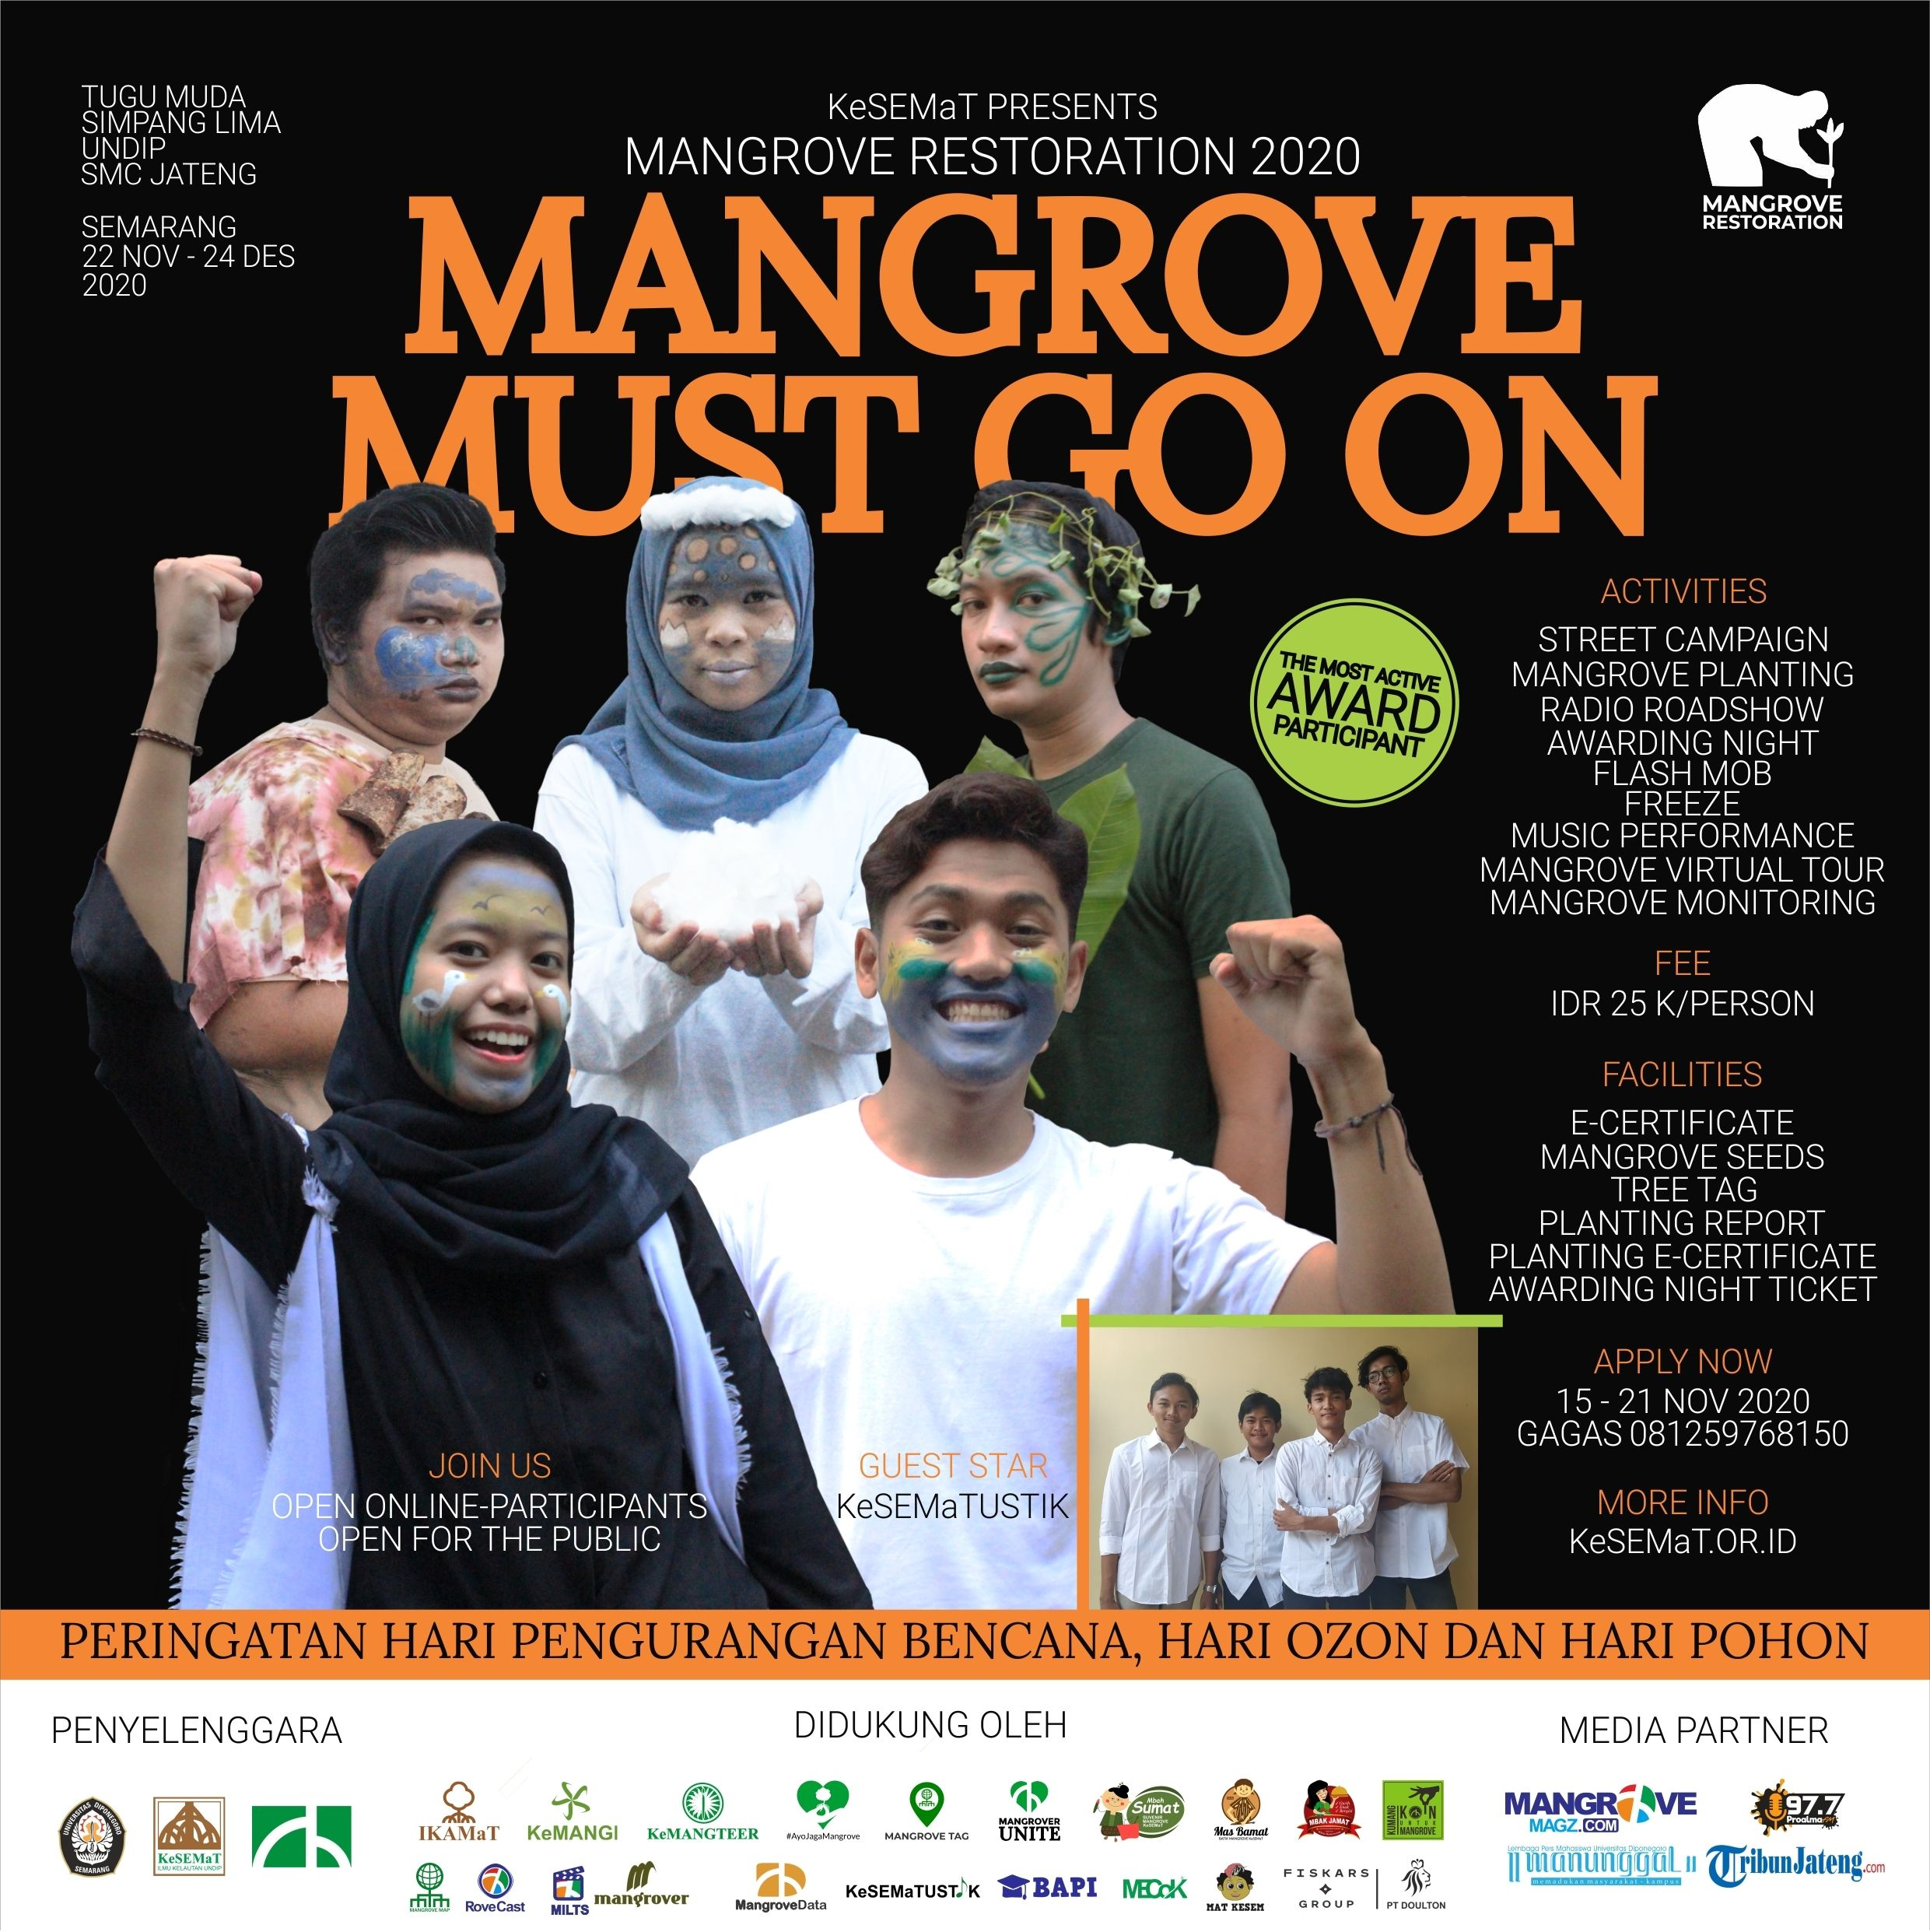 events semarang : mangrove restoration 2020: mangrove must go on